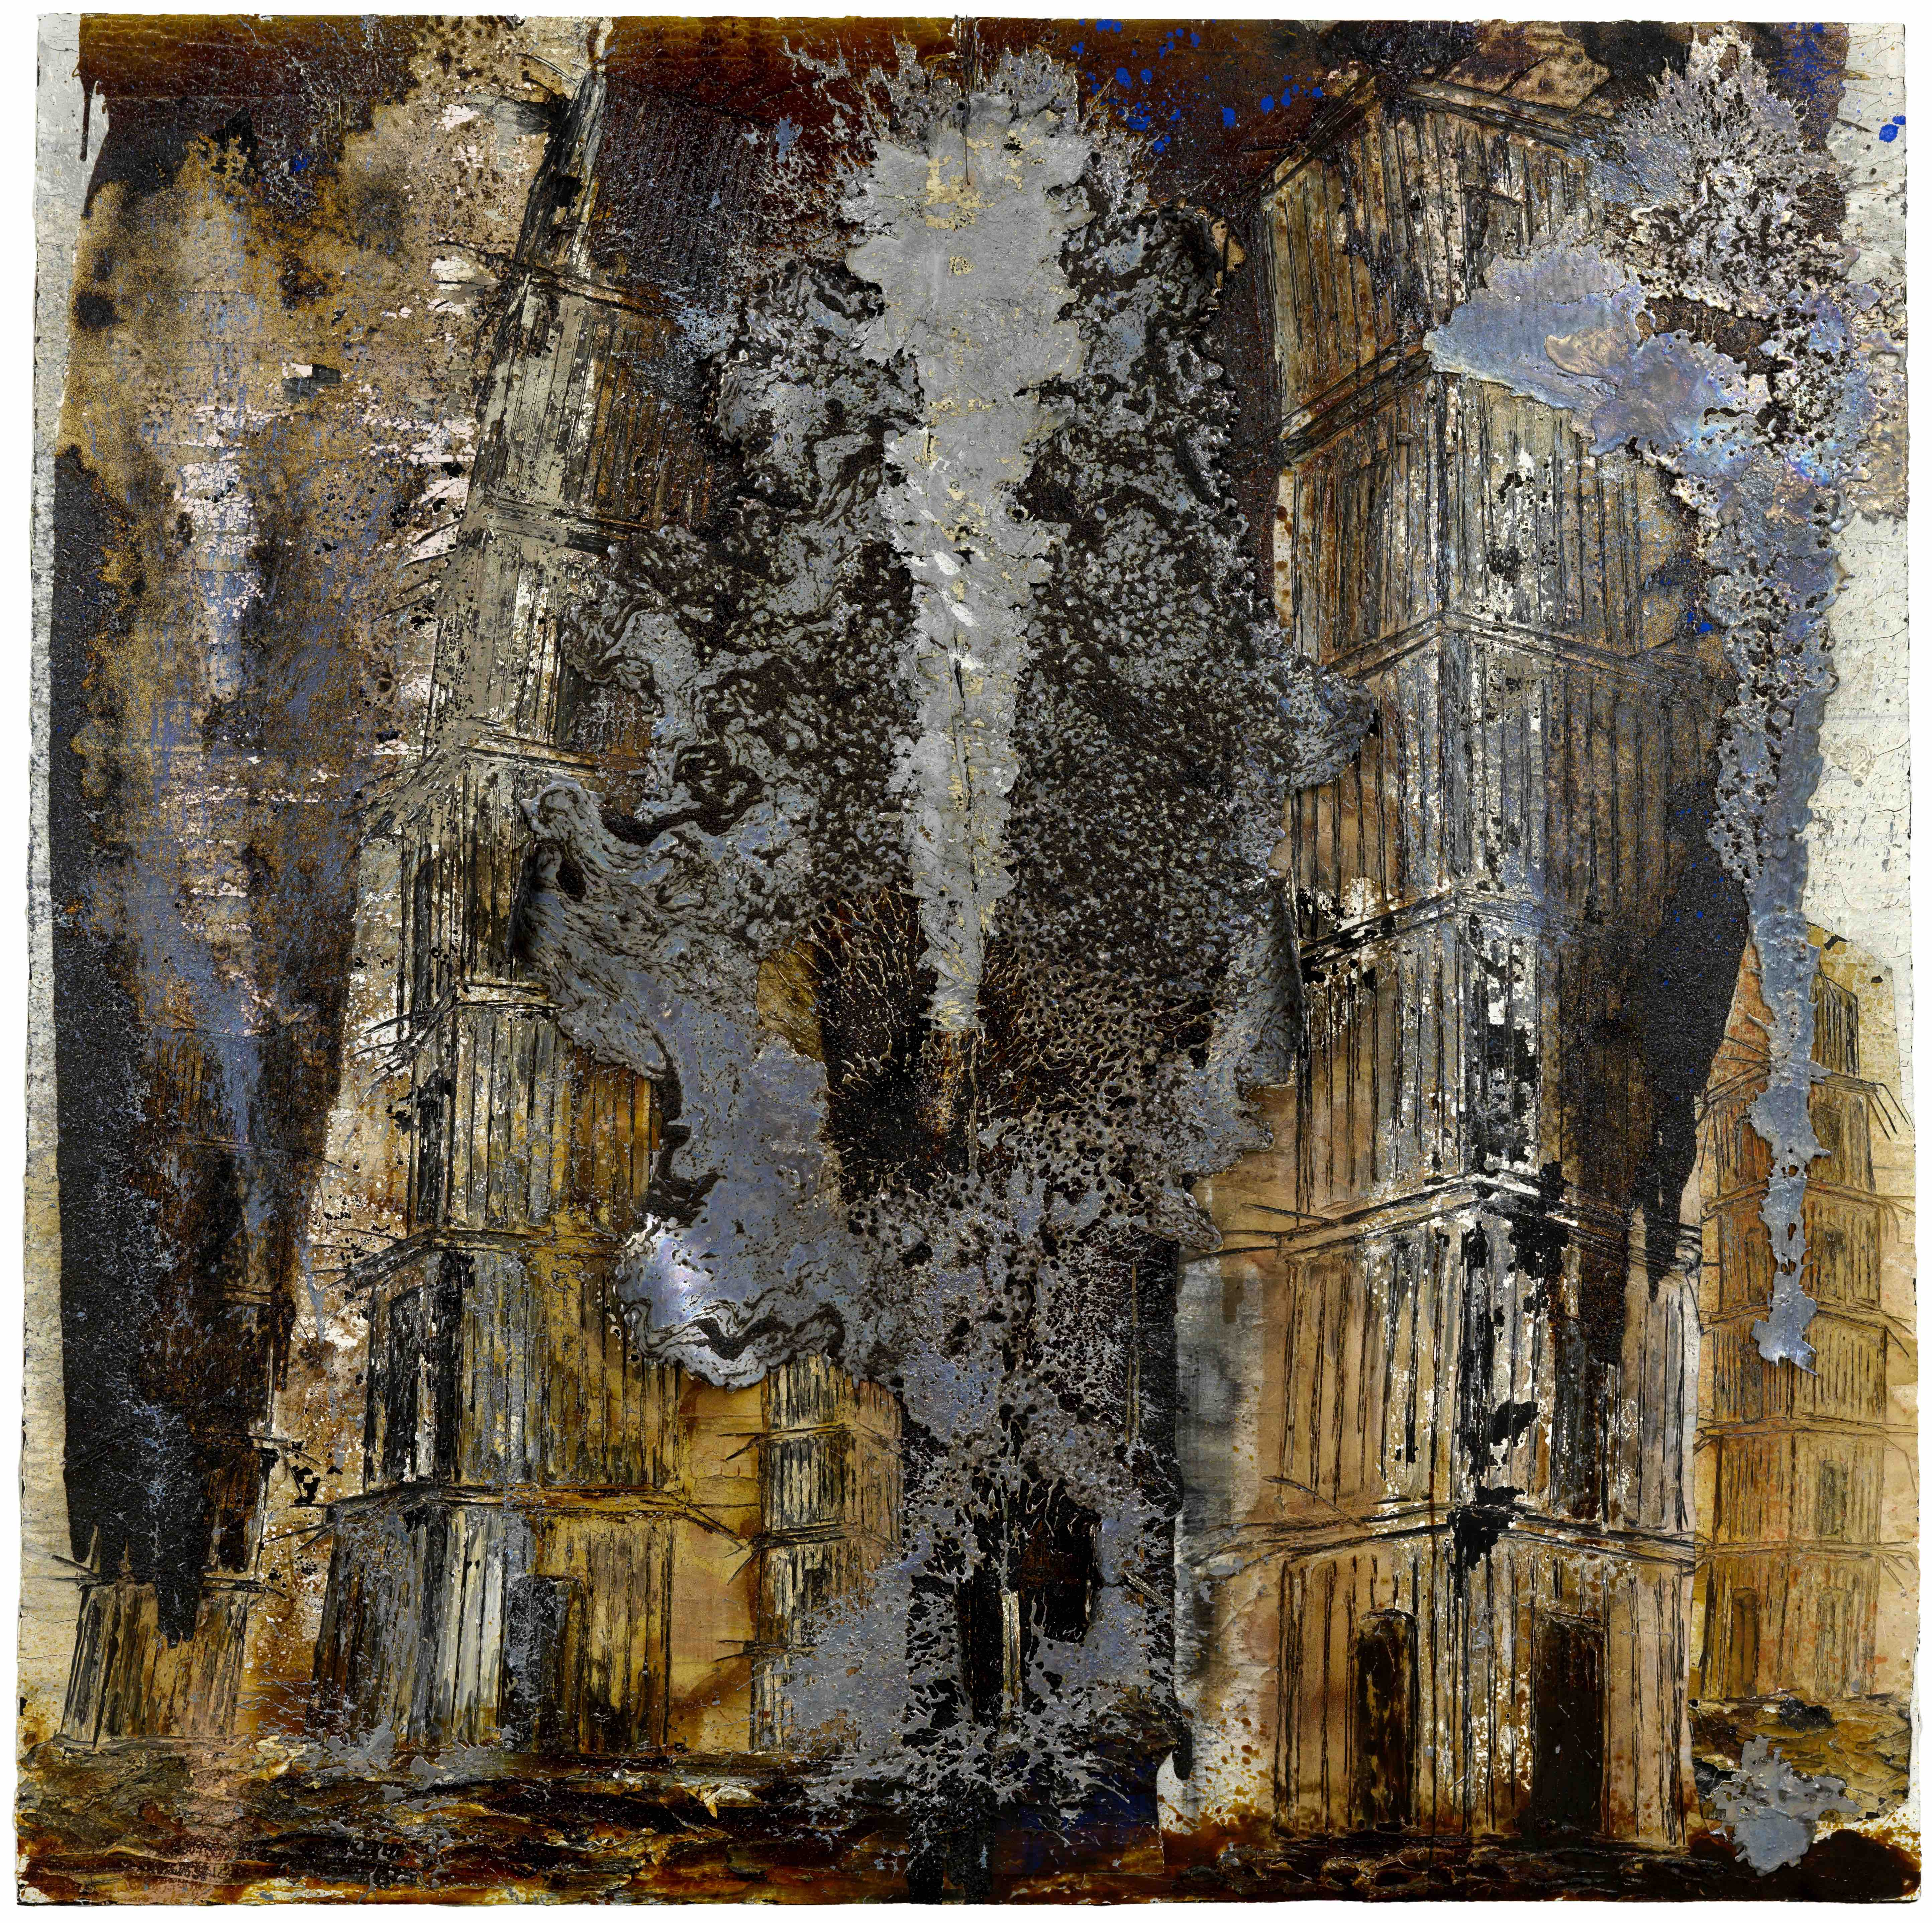 Anselm Kiefer and Auguste Rodin observe cathedrals - Paris Diary by ...